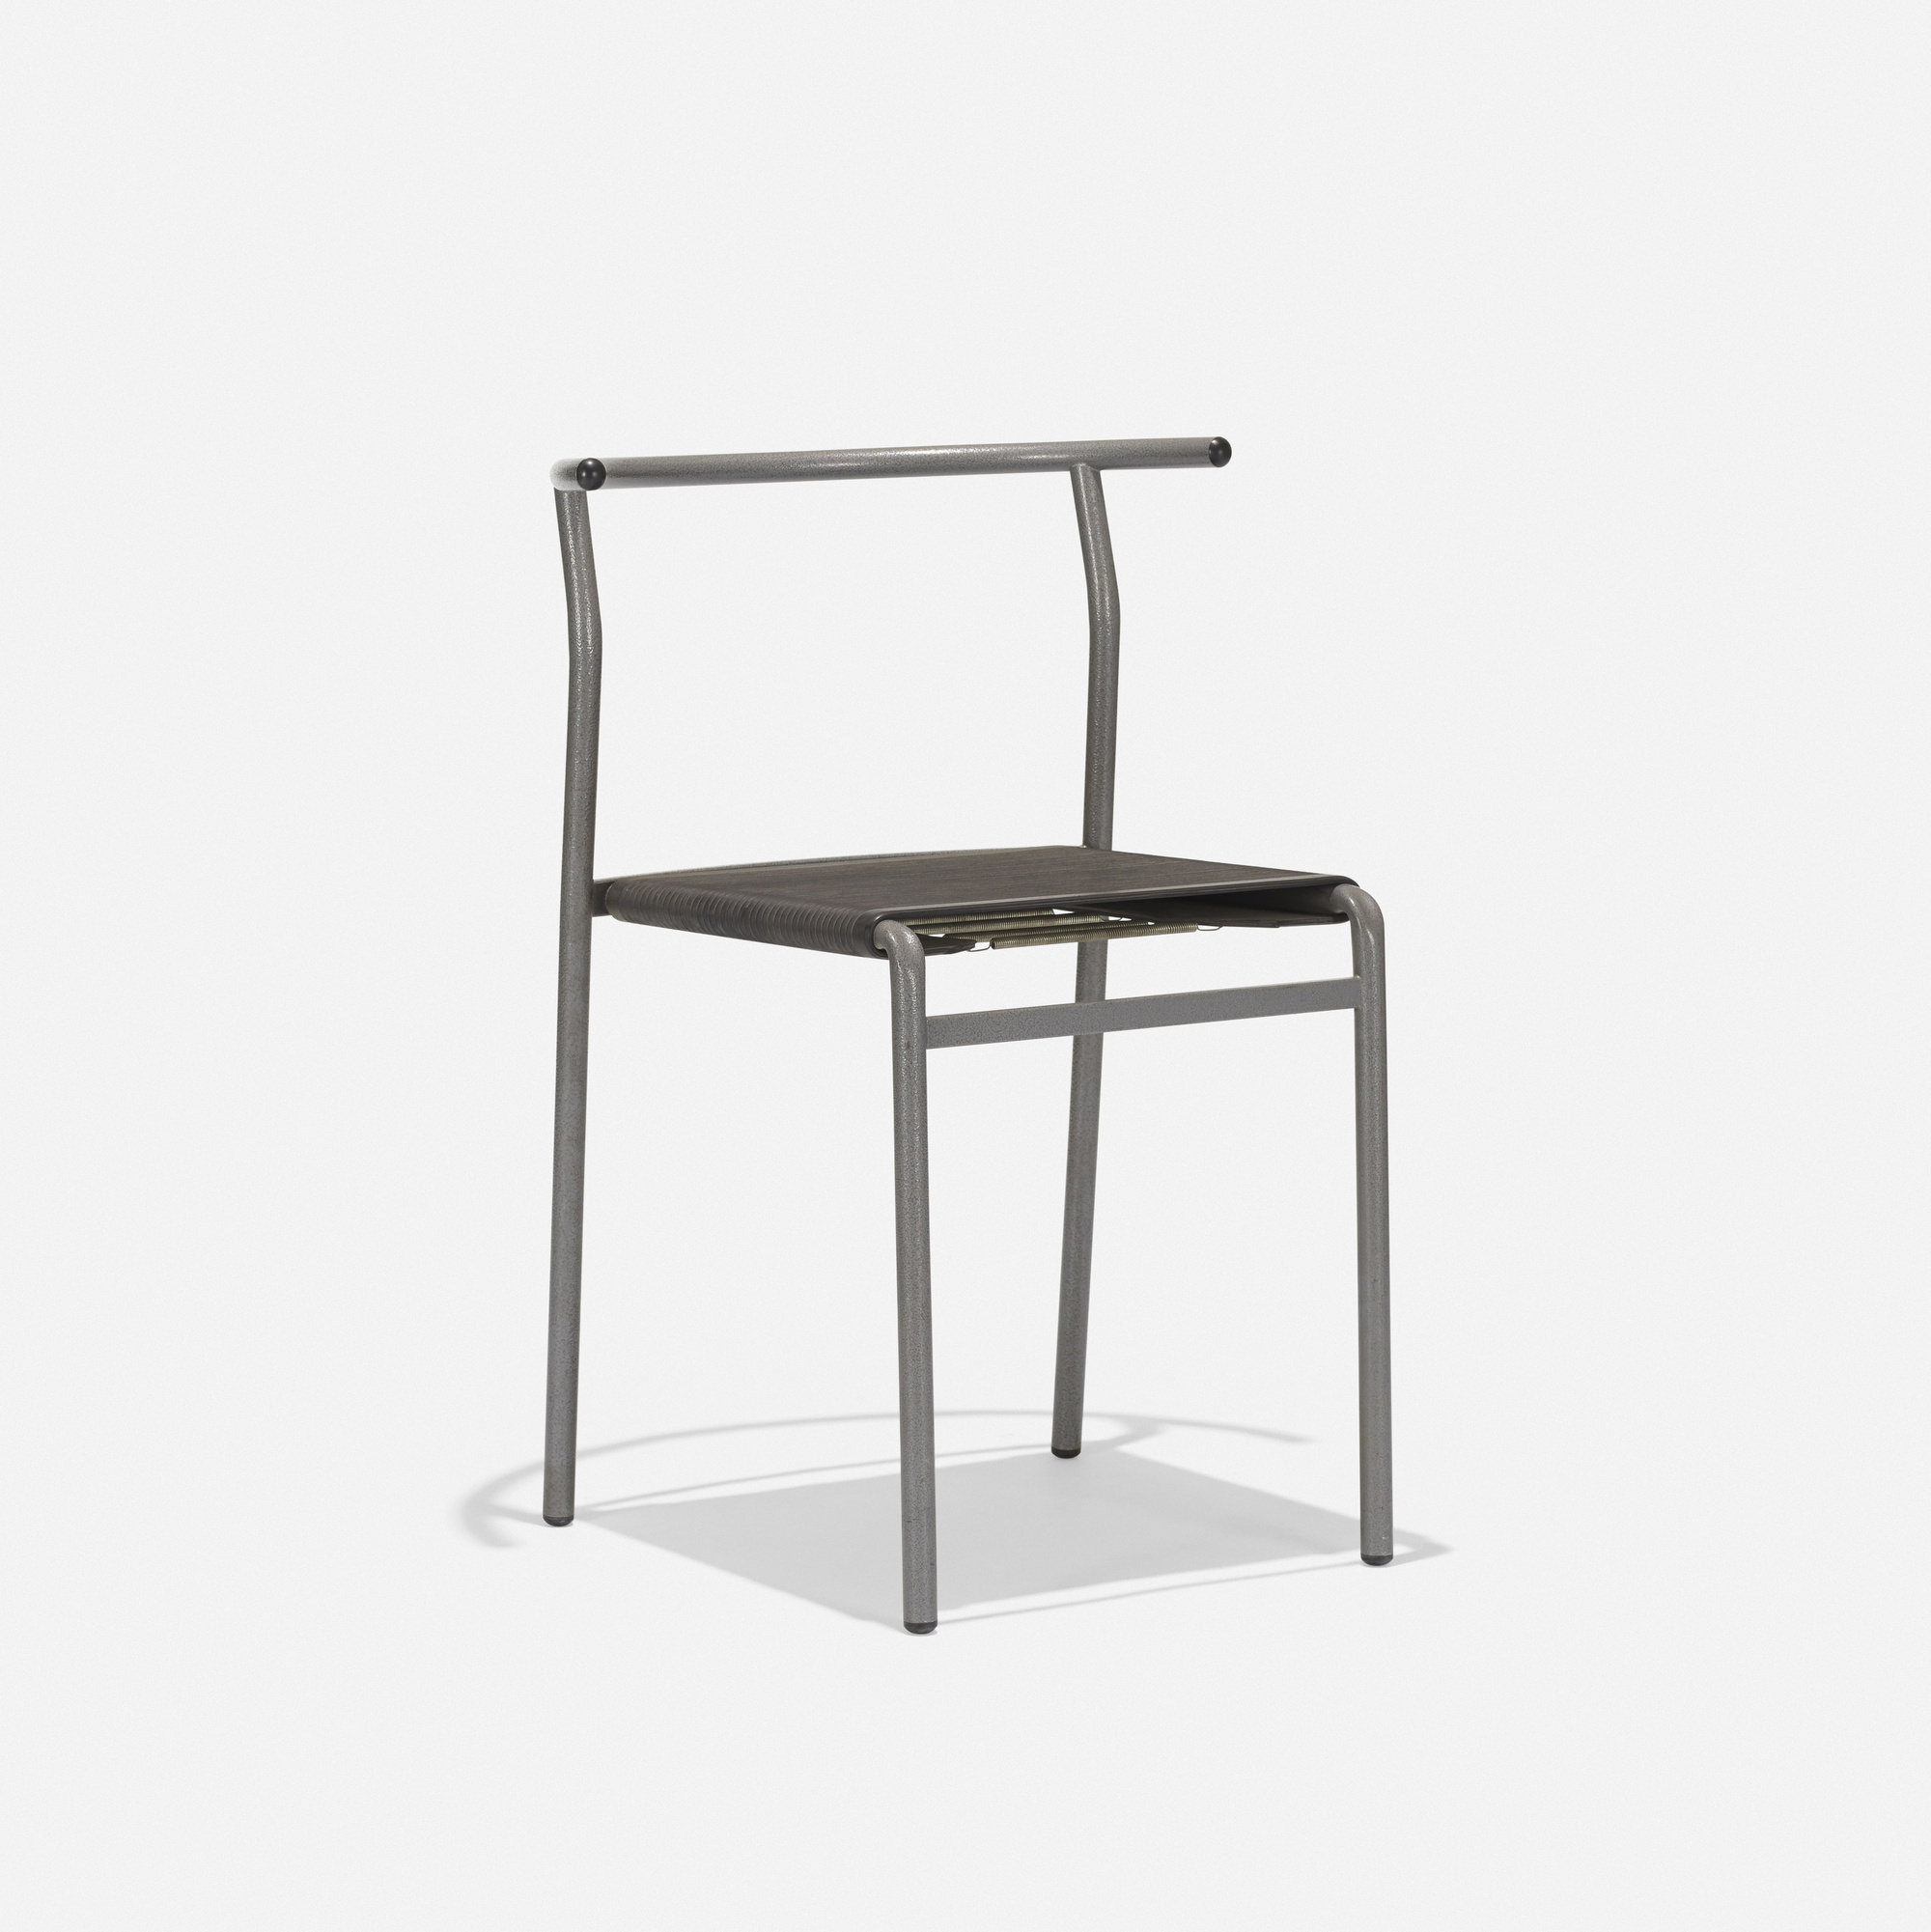 421: Philippe Starck / Café chair (3 of 5)